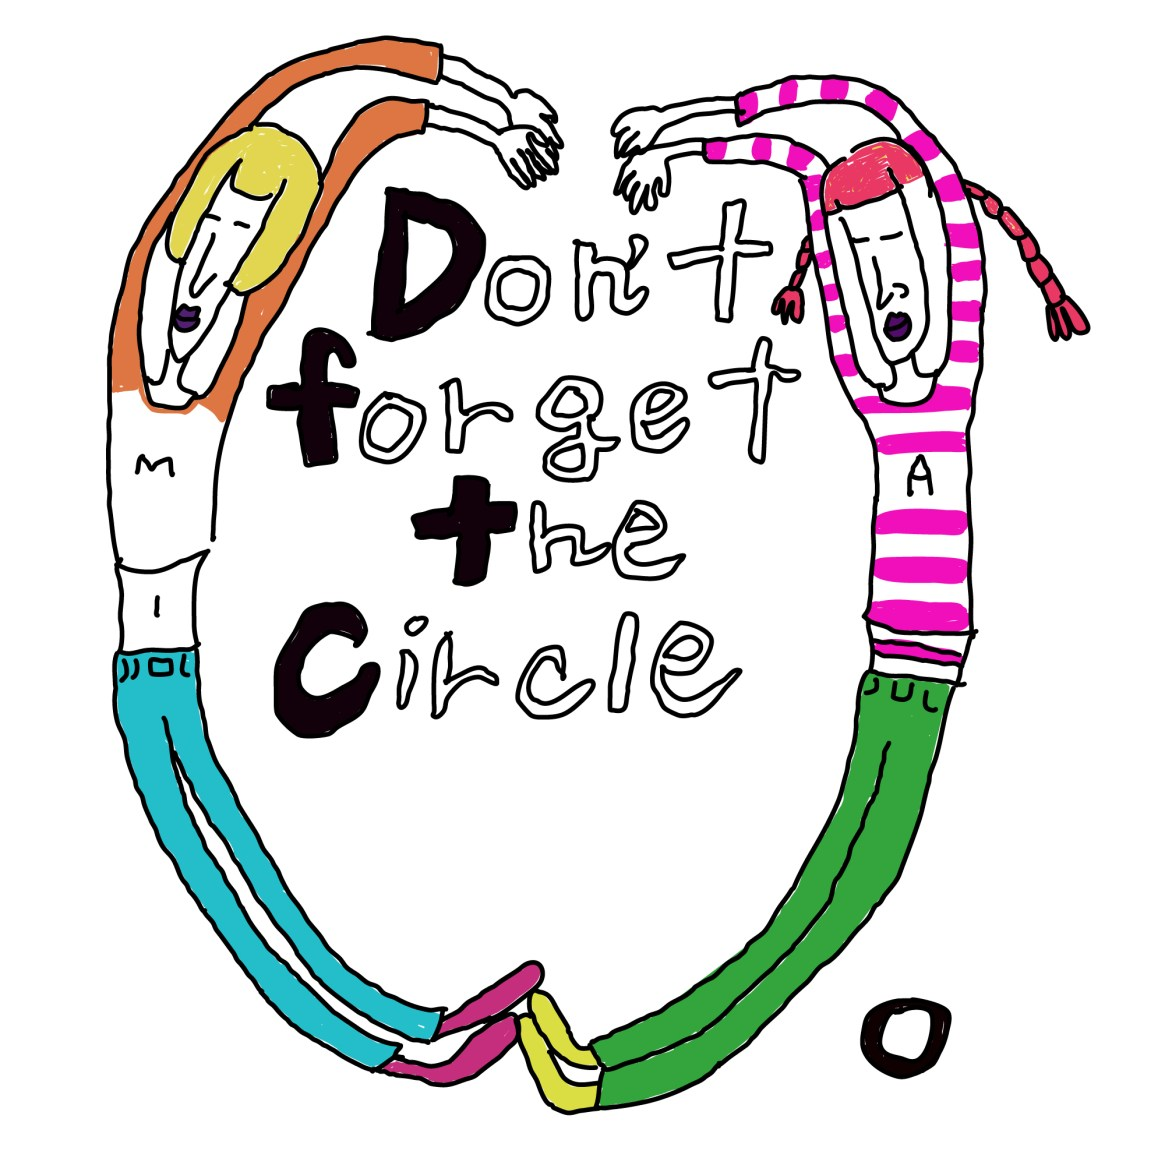 Don't-Forget-the-Circle-jaket_p1